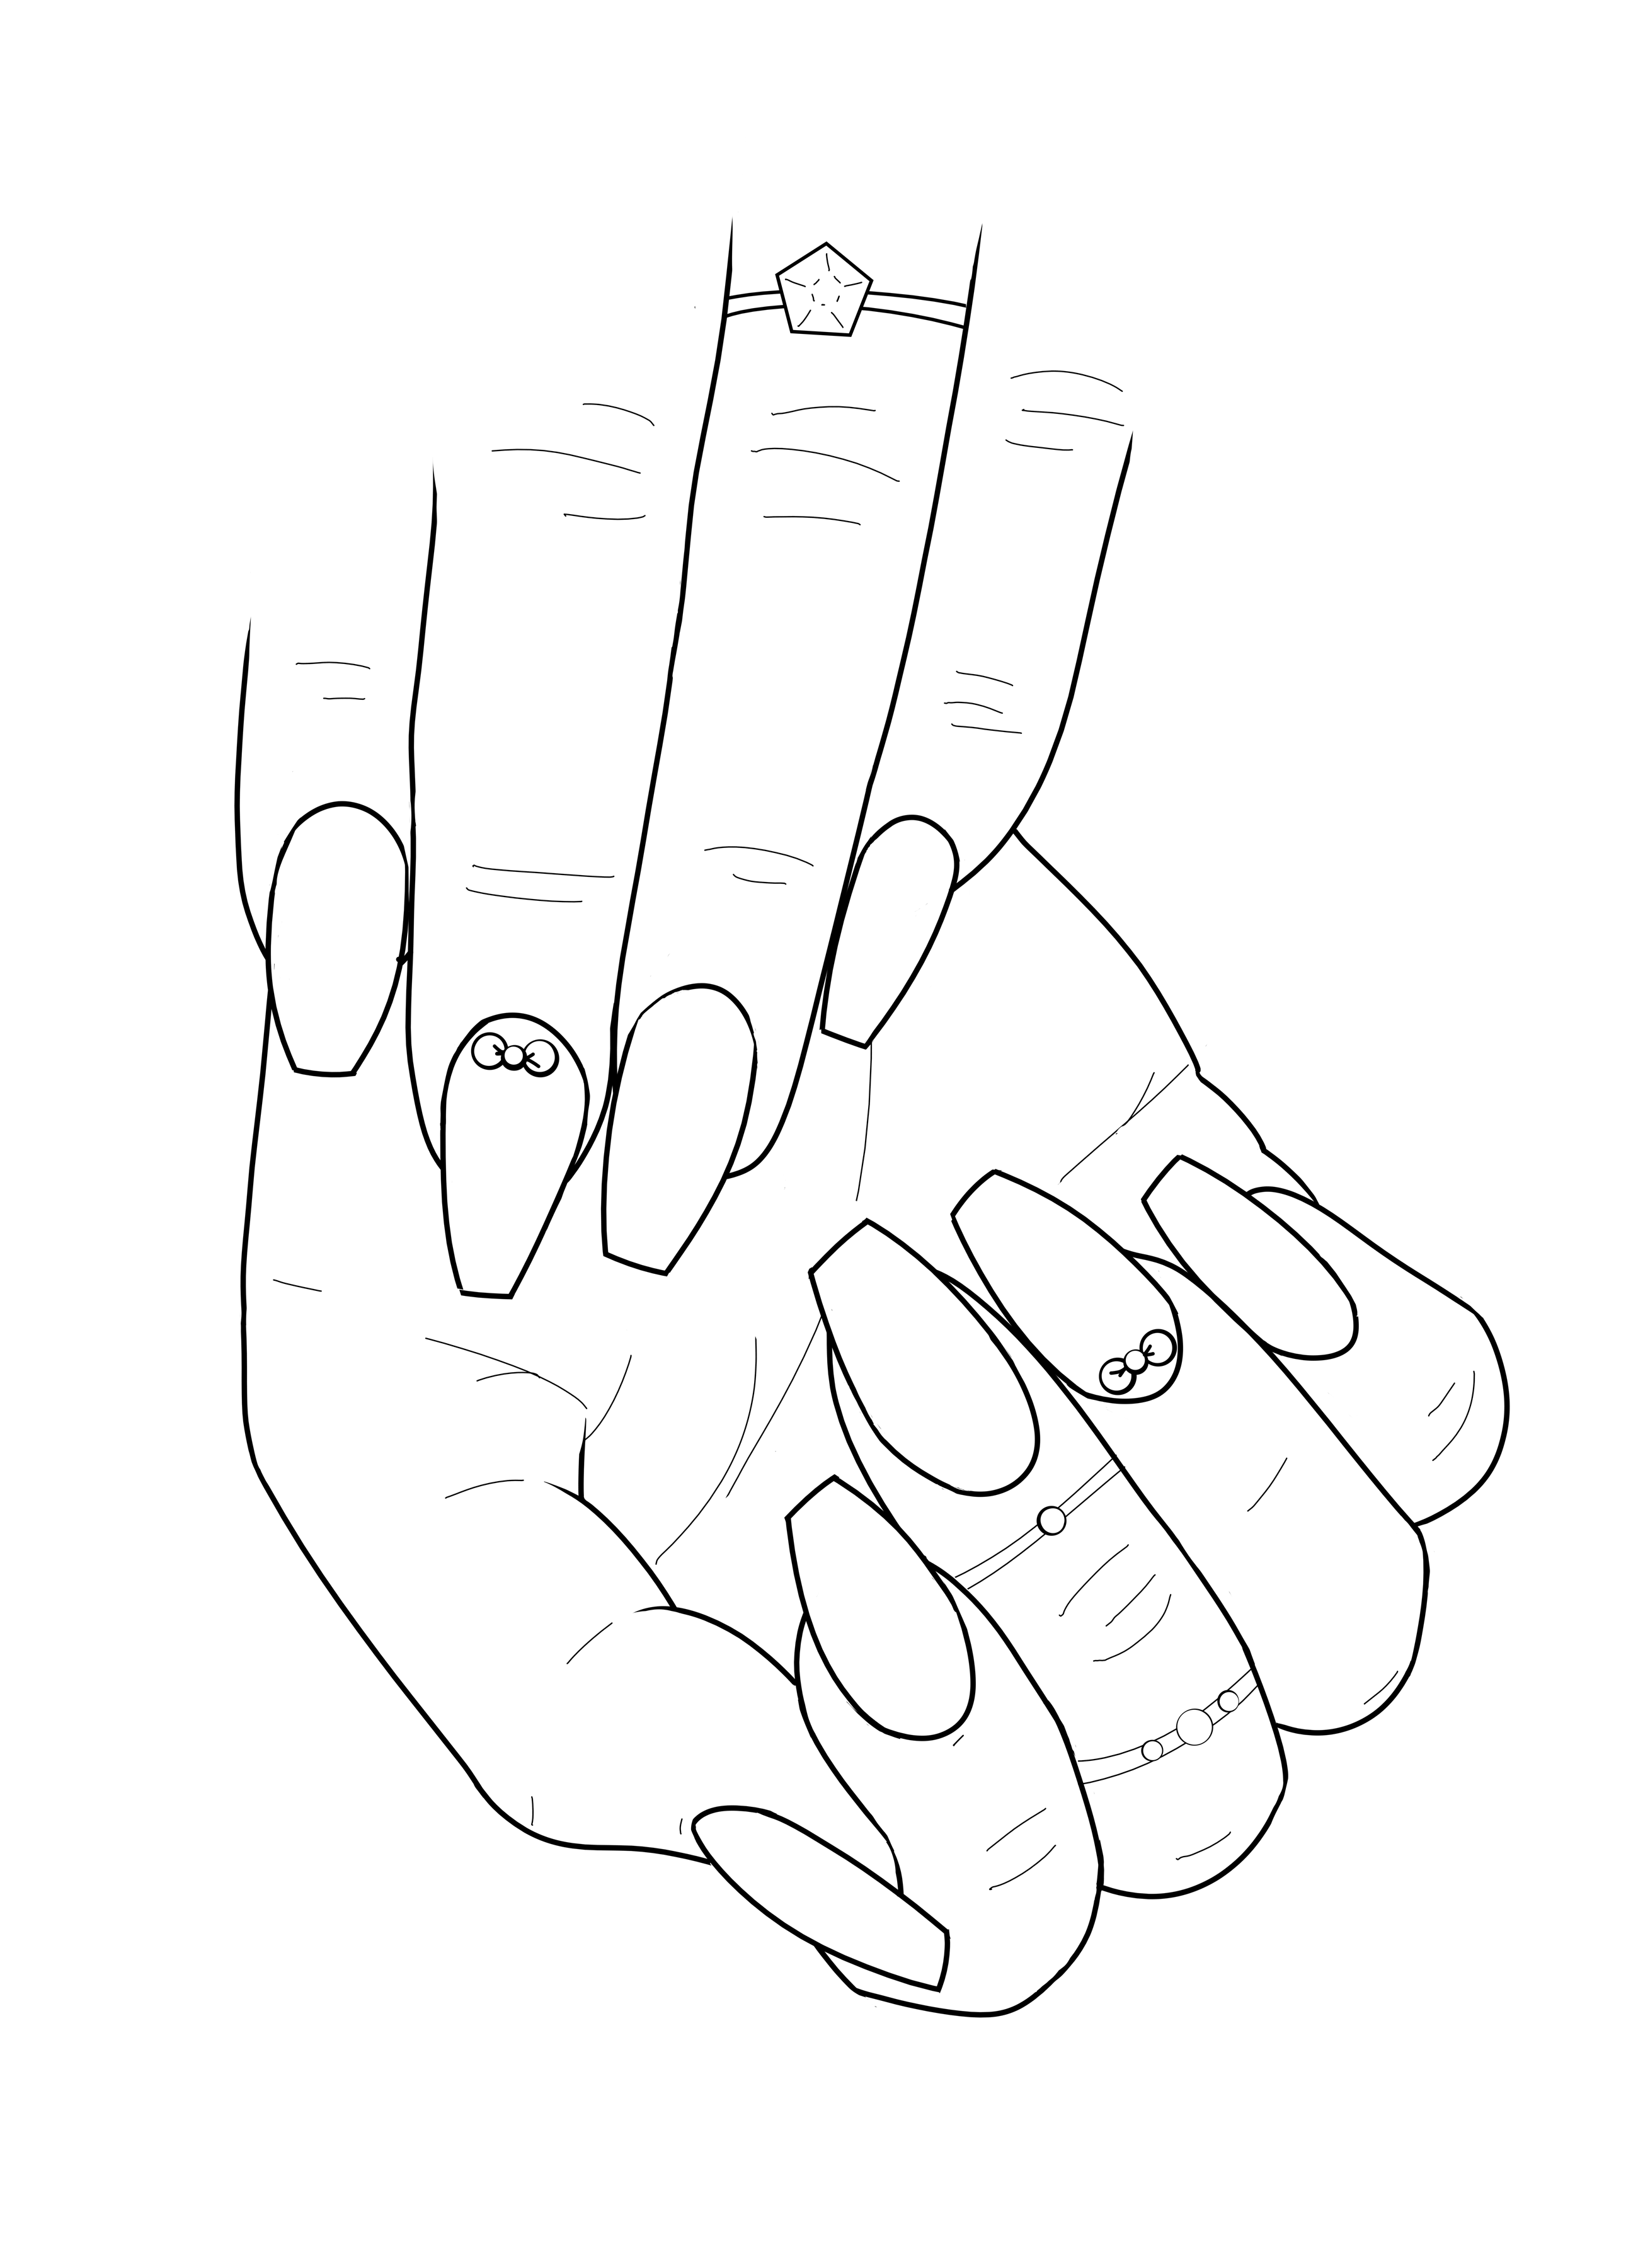 2600x3600 Coloring Page From The Nail Art Adult Coloring Book, Available